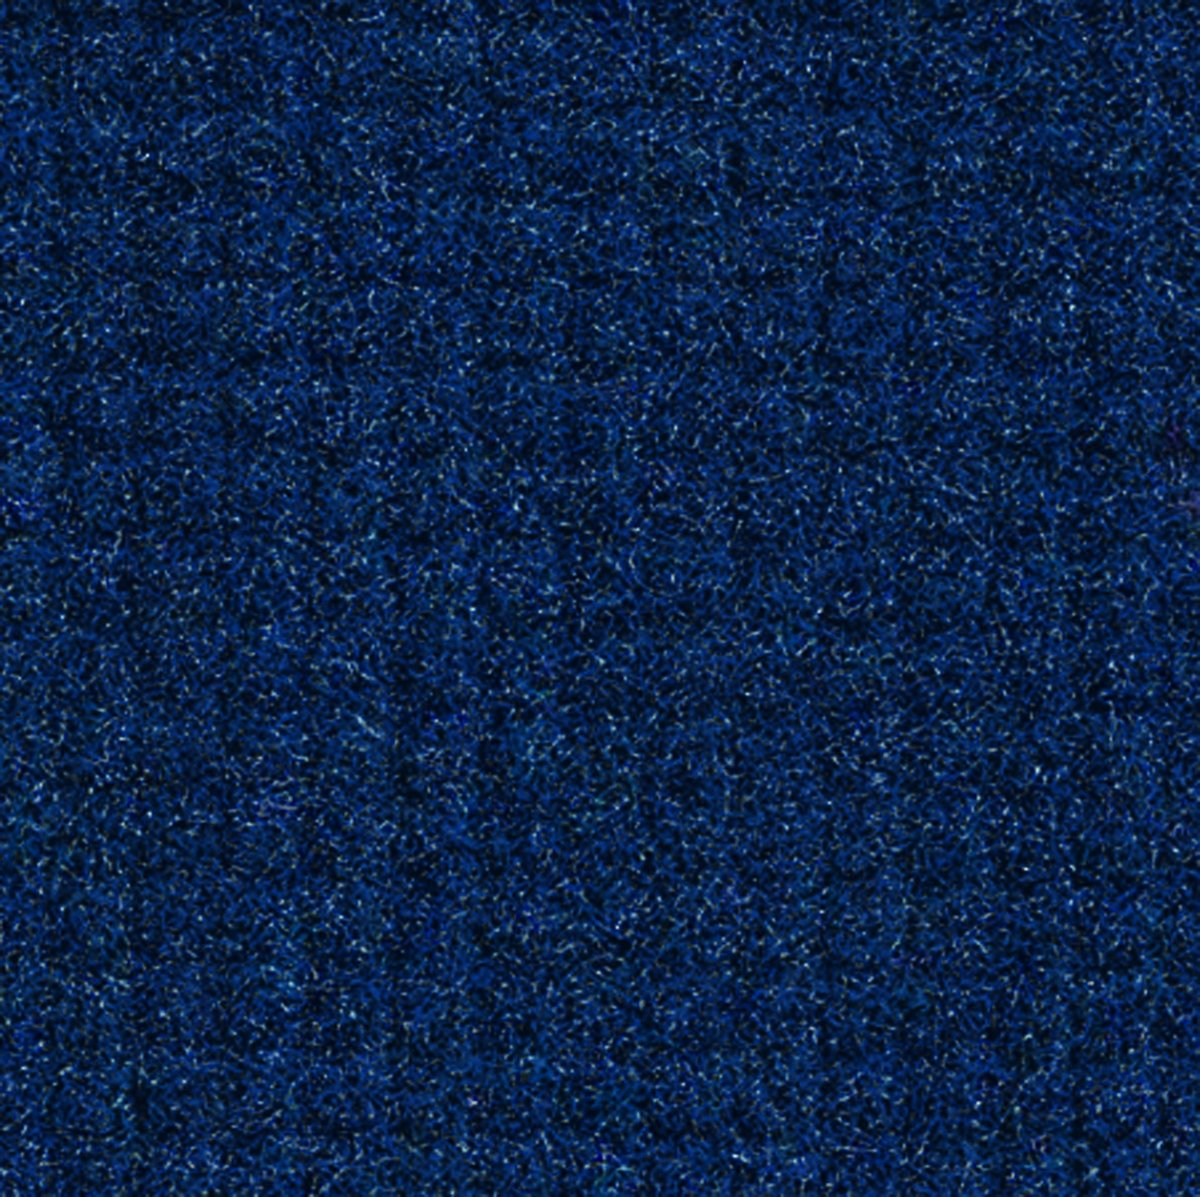 For Indoor 5/' Length x 3/' Width The Andersen Company 385-302-5F3F Andersen 385 Navy Nylon Brush Hog Plus Entrance Mat 5 Length x 3 Width